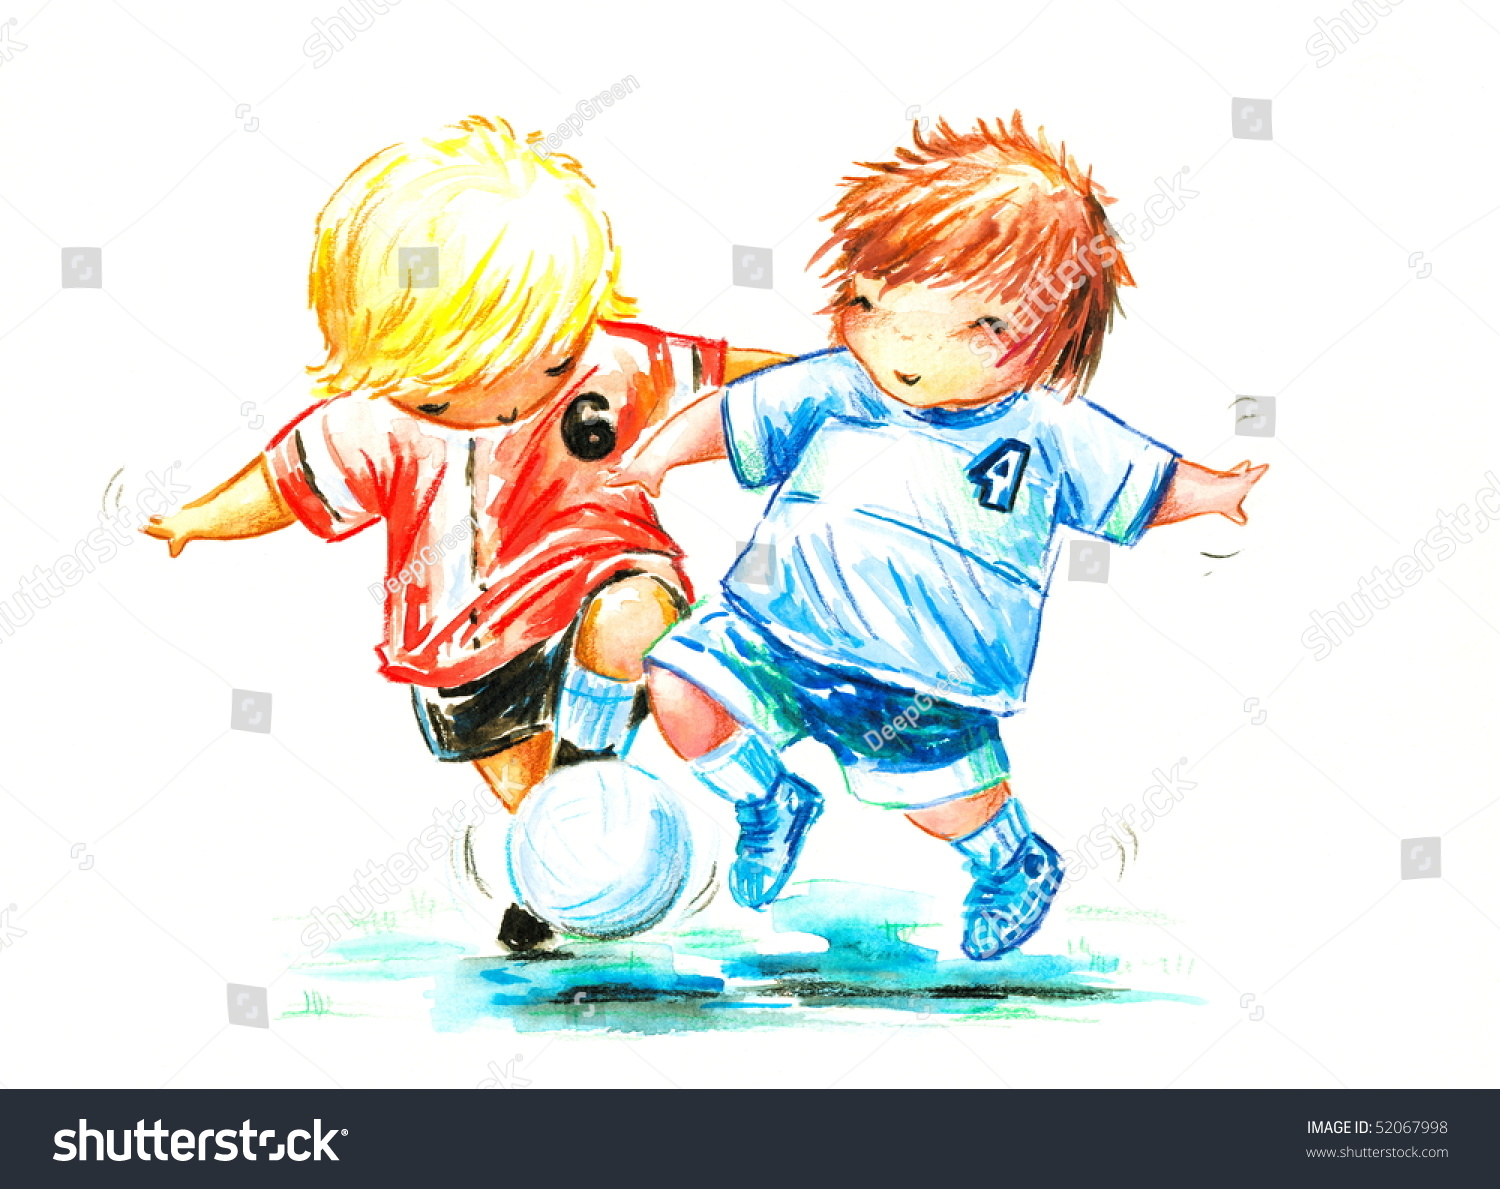 Two boys play soccer picture i have created myself with watercolors and colored pencils